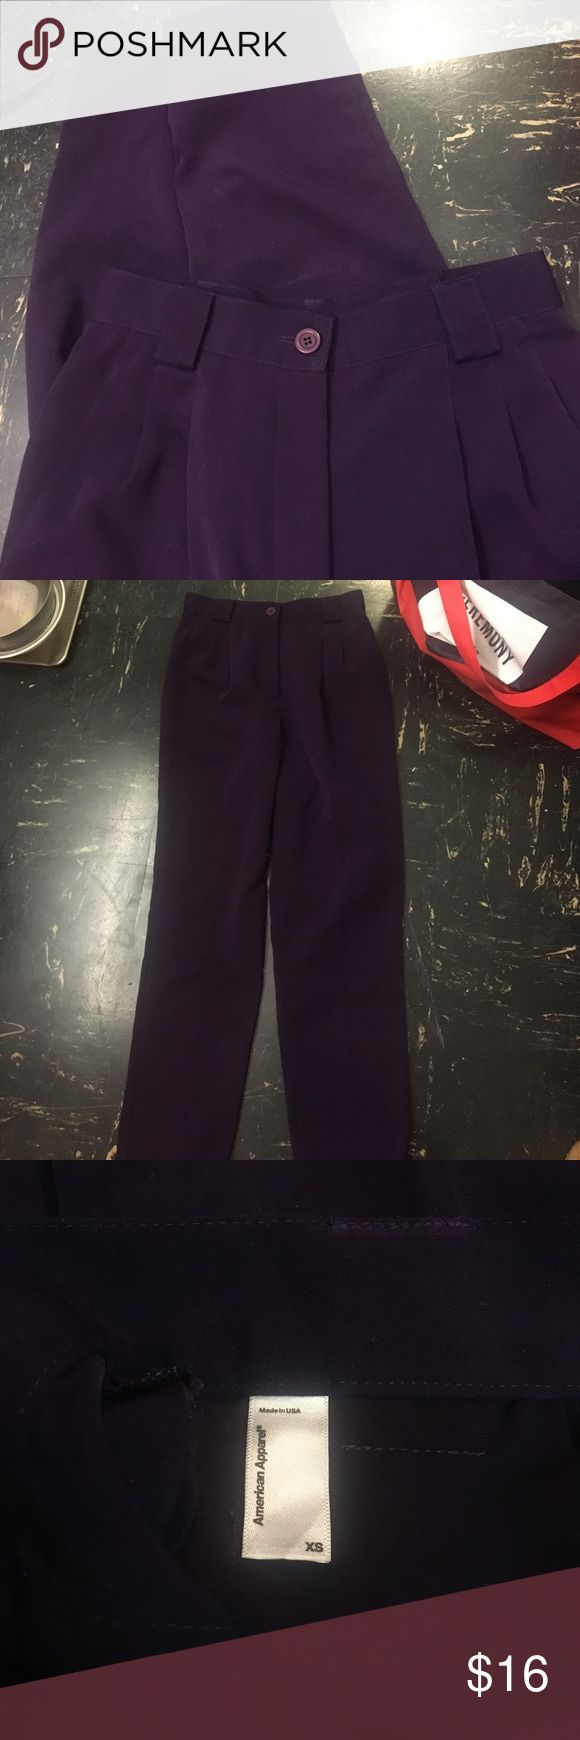 Purple high waisted American Apparel trousers Purple high waisted AA pleated trousers, size XS, worn once. In perfect shape and super flattering fit American Apparel Pants Trousers